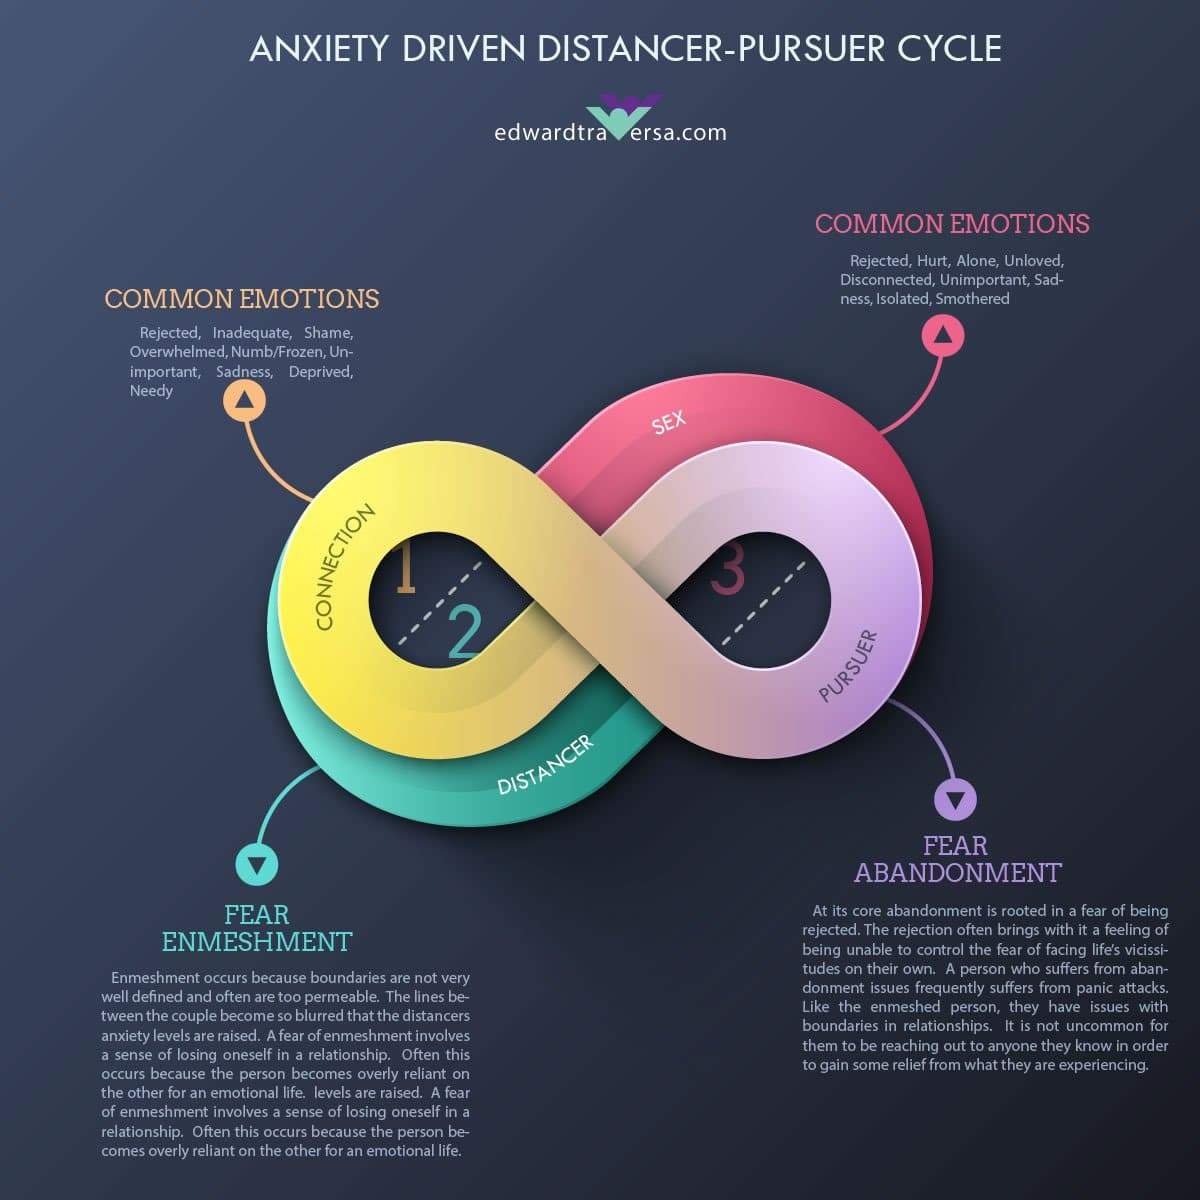 Distancer Pursuer Dynamic